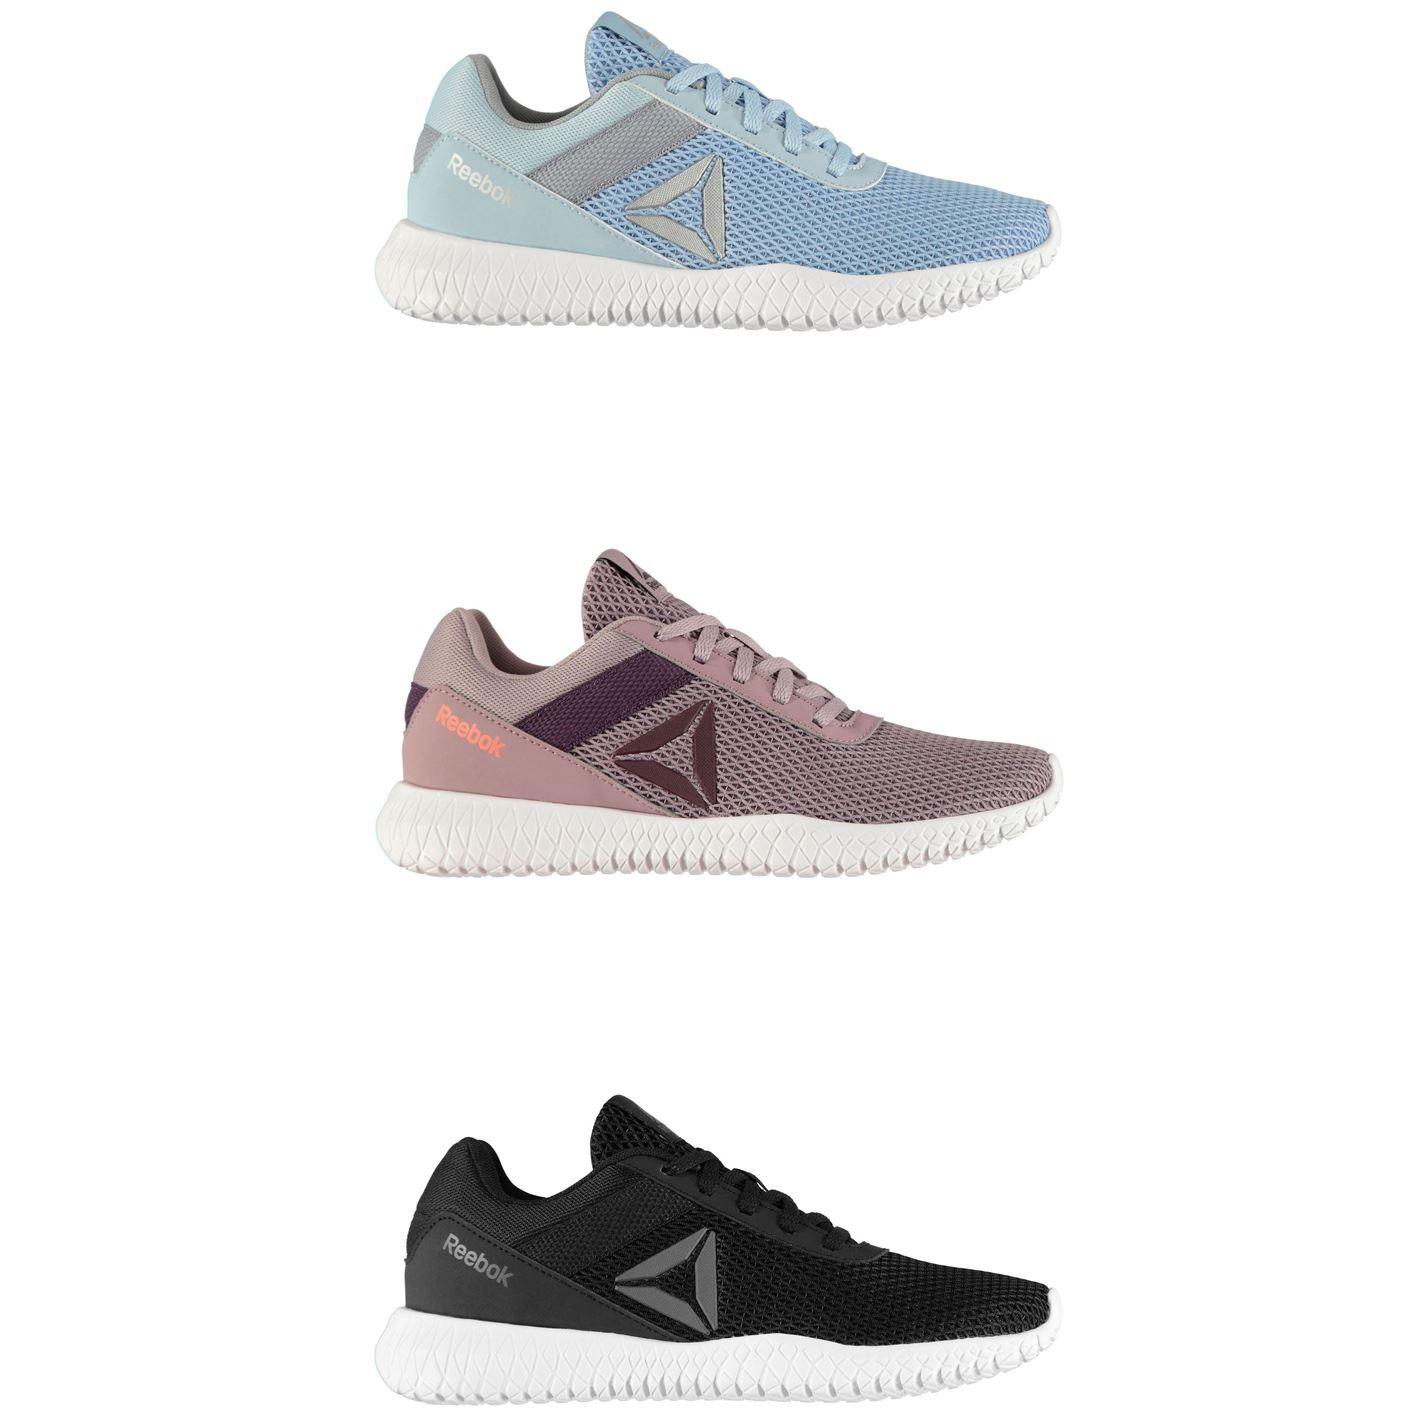 Details about Reebok Flex Energy Training Shoes Womens Fitness Gym Workout Trainers Sneakers